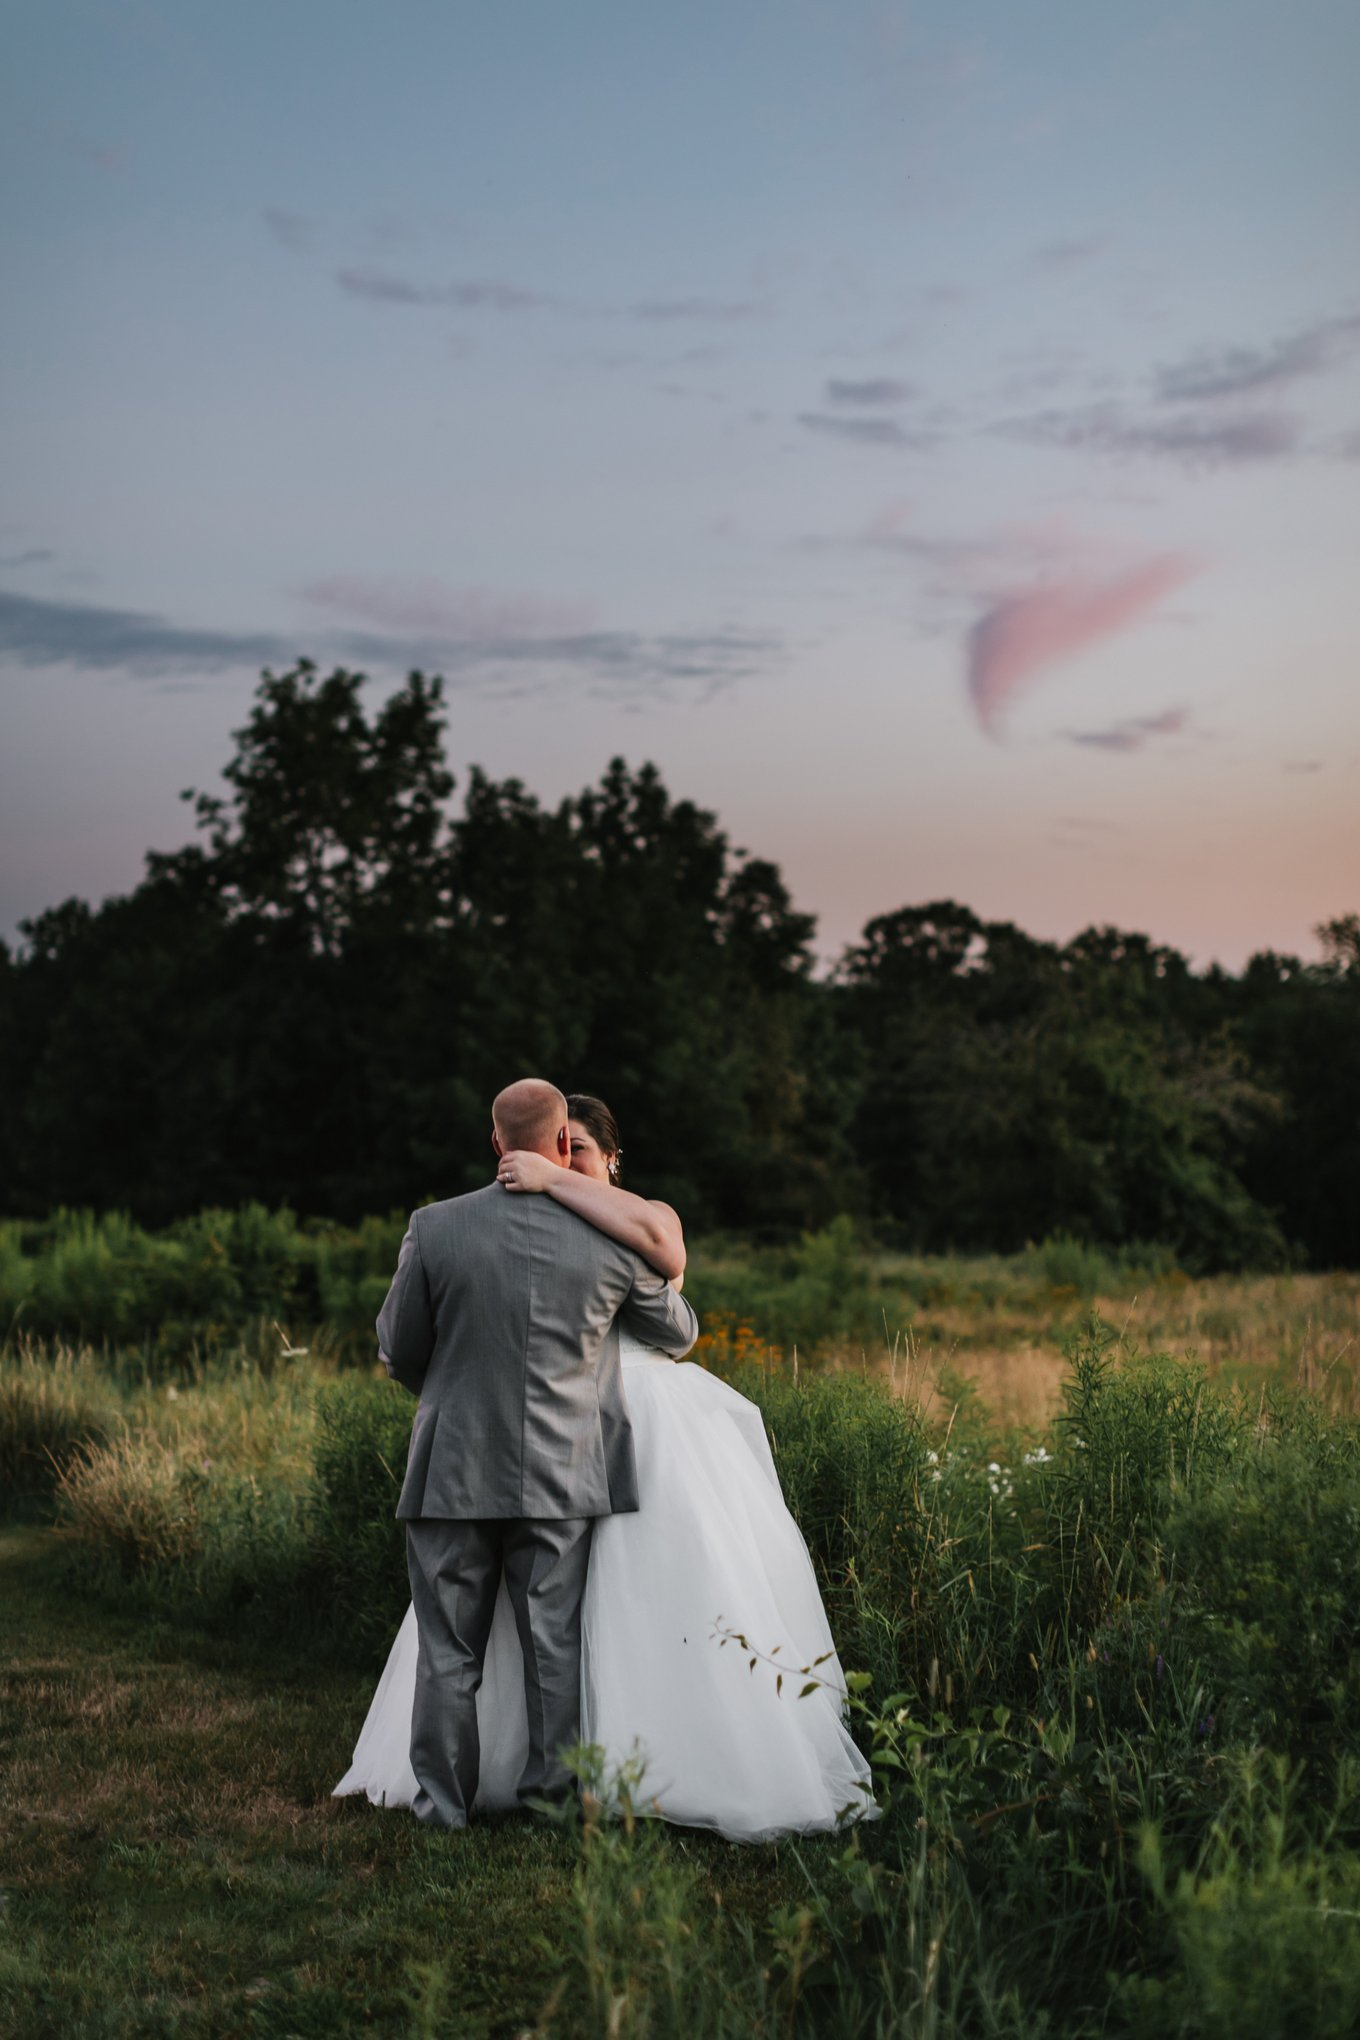 Harrington_Farm_Wedding_Photographer-53.jpg